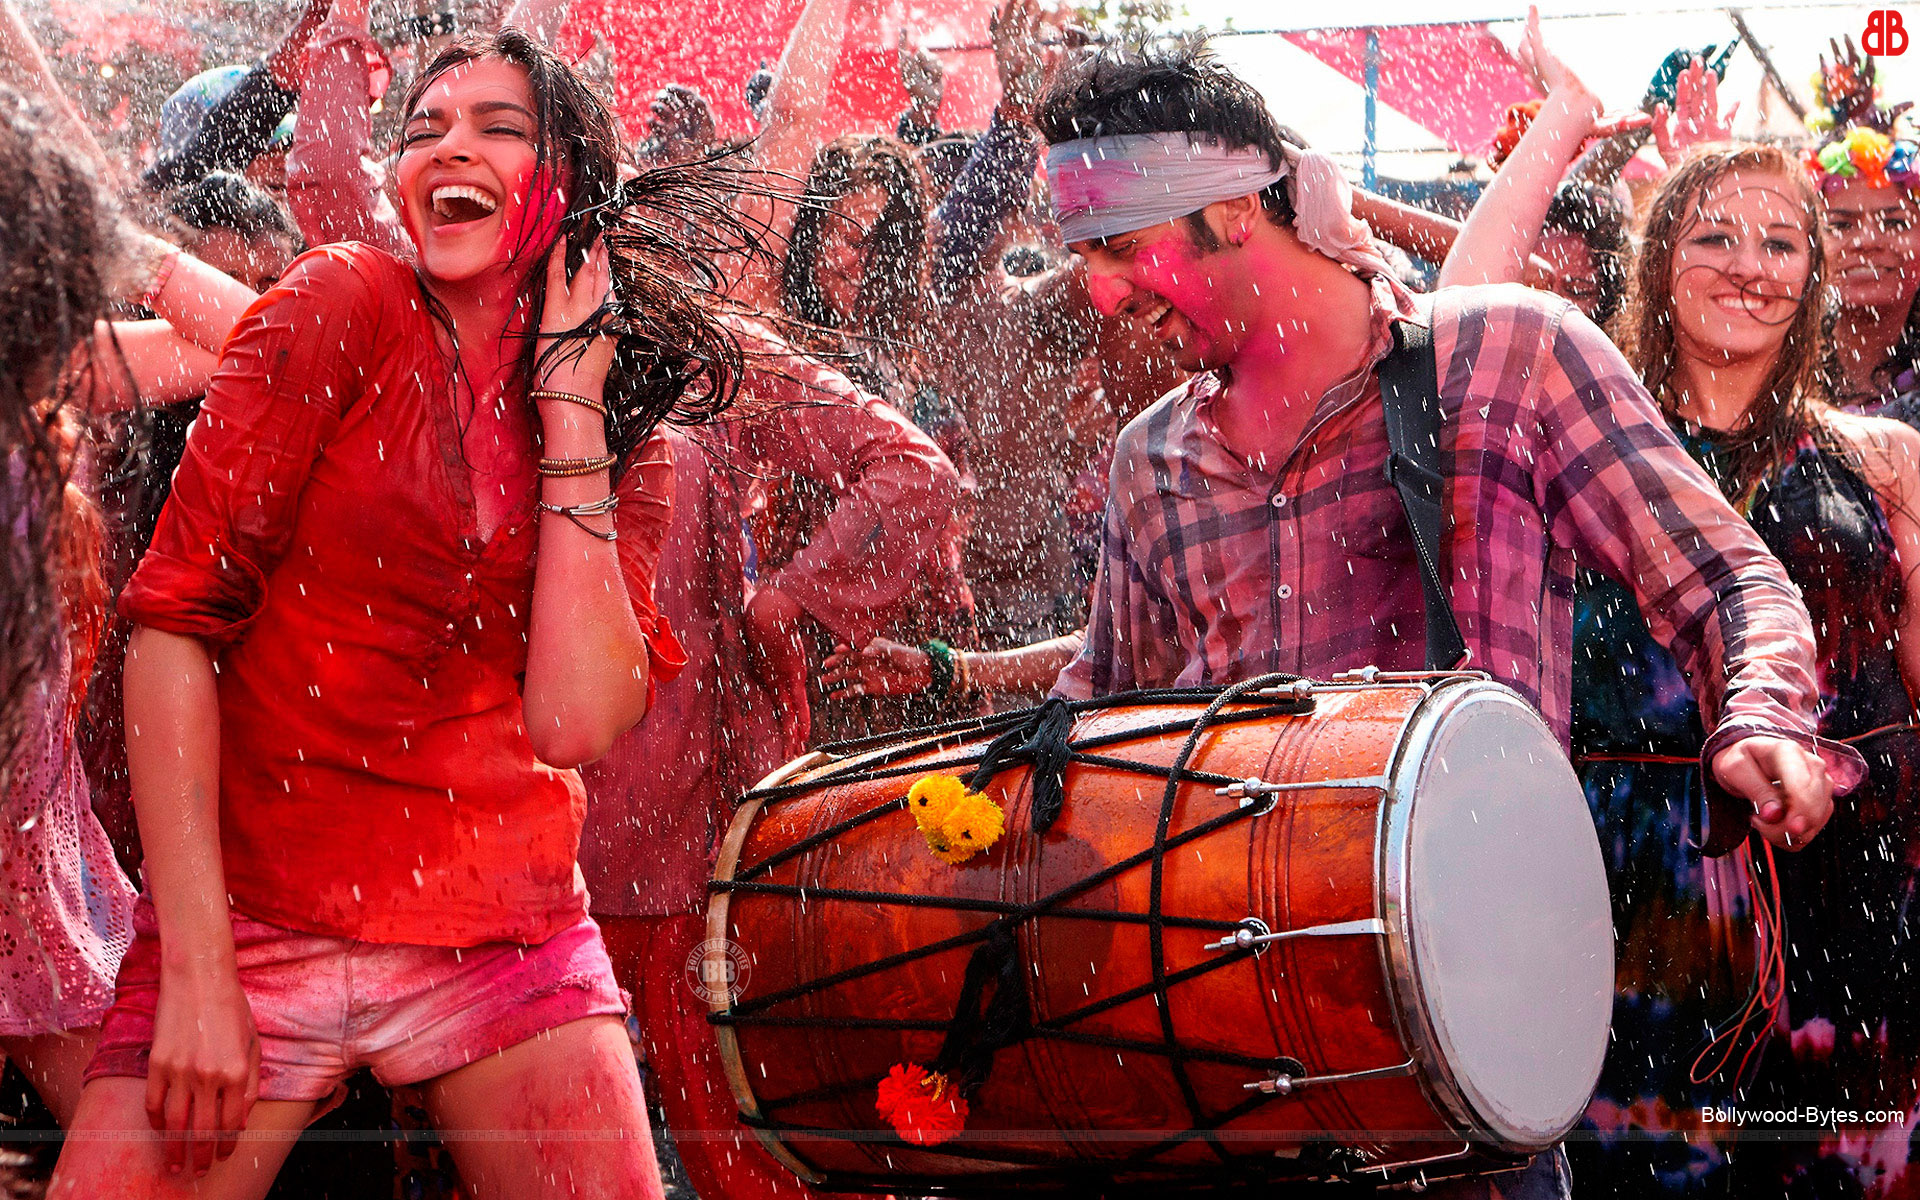 Yeh Jawaani Hai Deewani HD Wallpapers - Bollywood Bytes